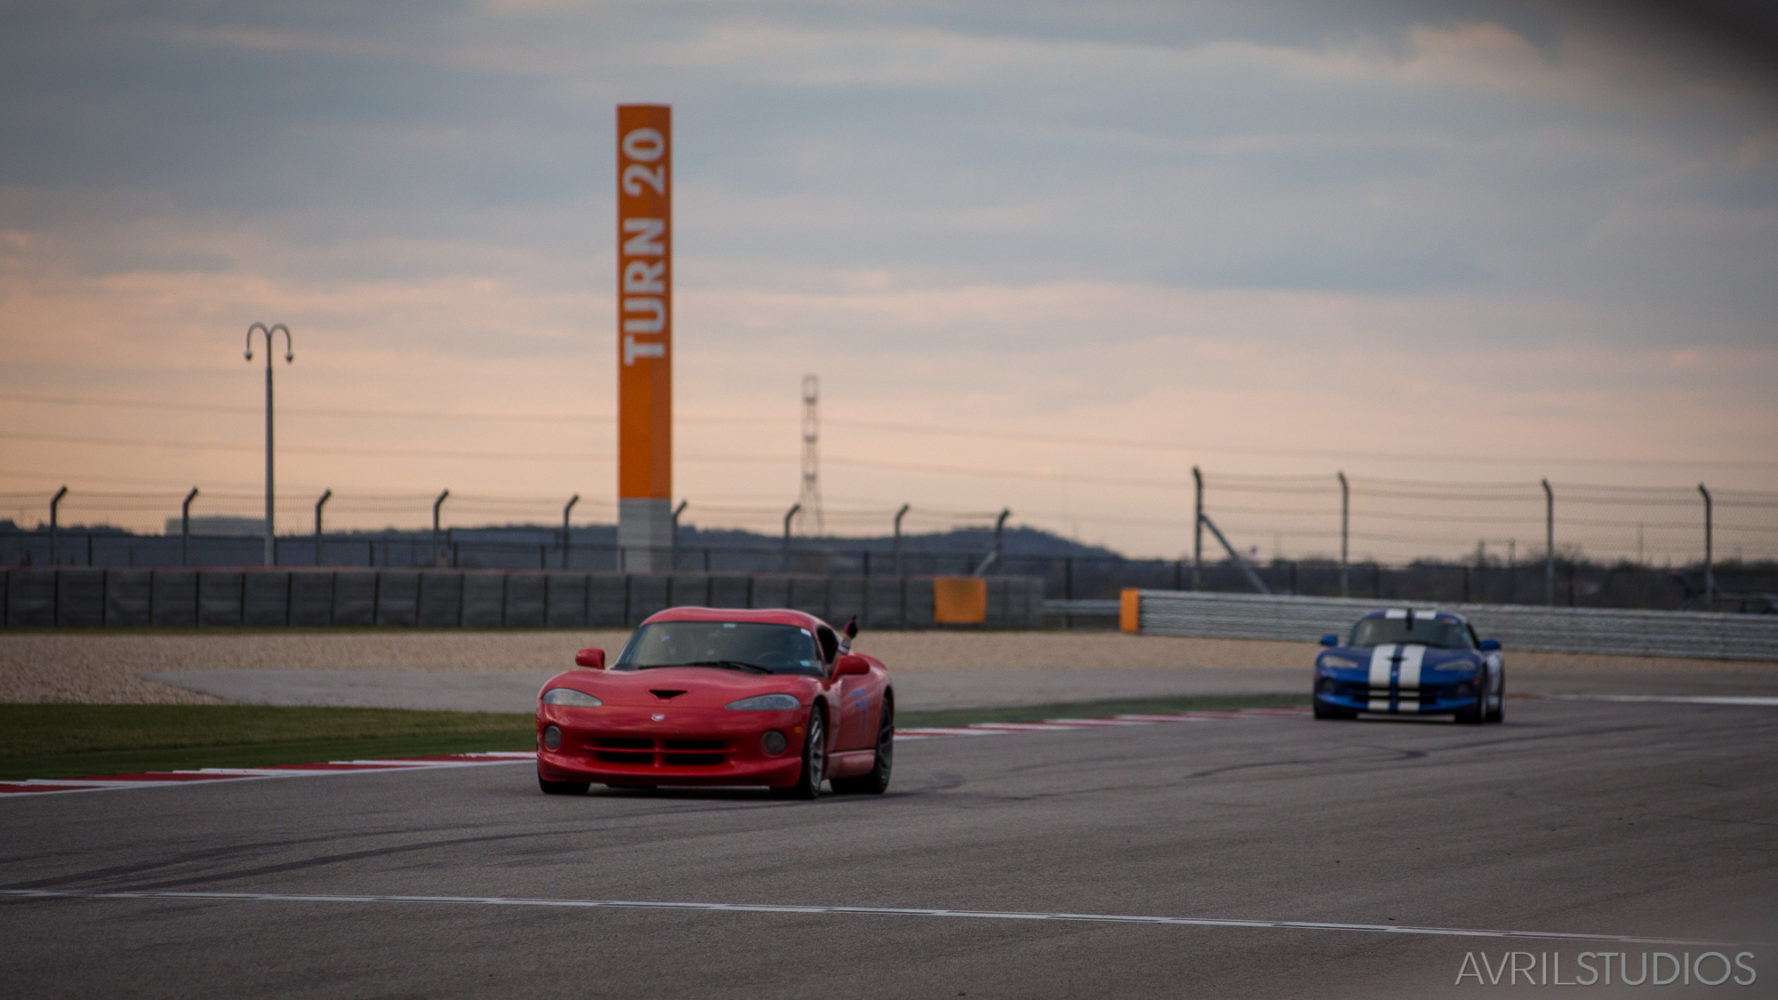 Racing at Circuit of the Americas